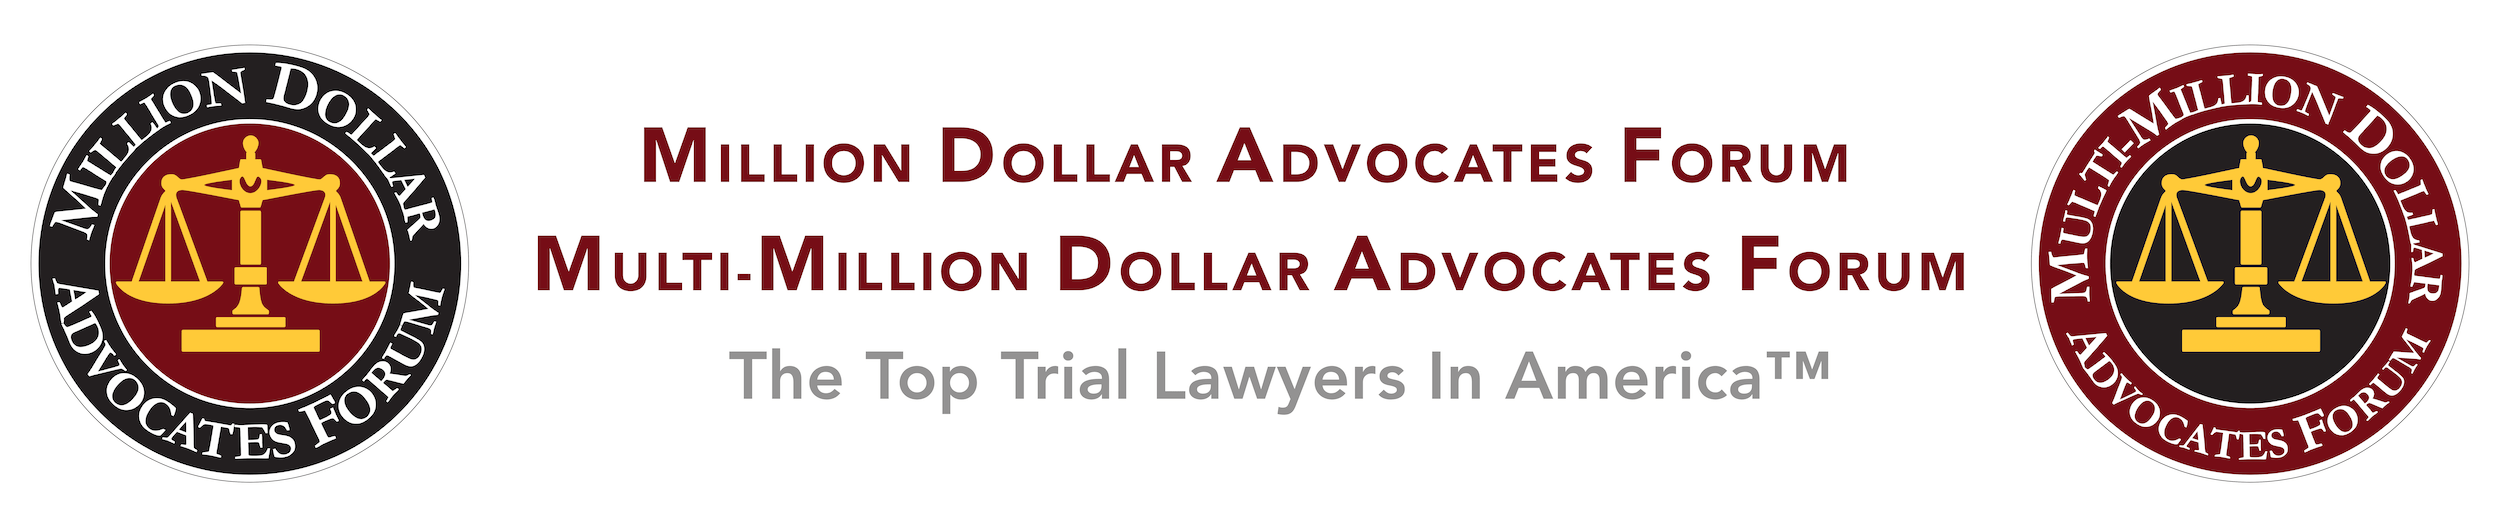 Million Dollar Advocates Forum & Multi-Million Dollar Advocates Forum Member; The Top Trial Lawyers in America™